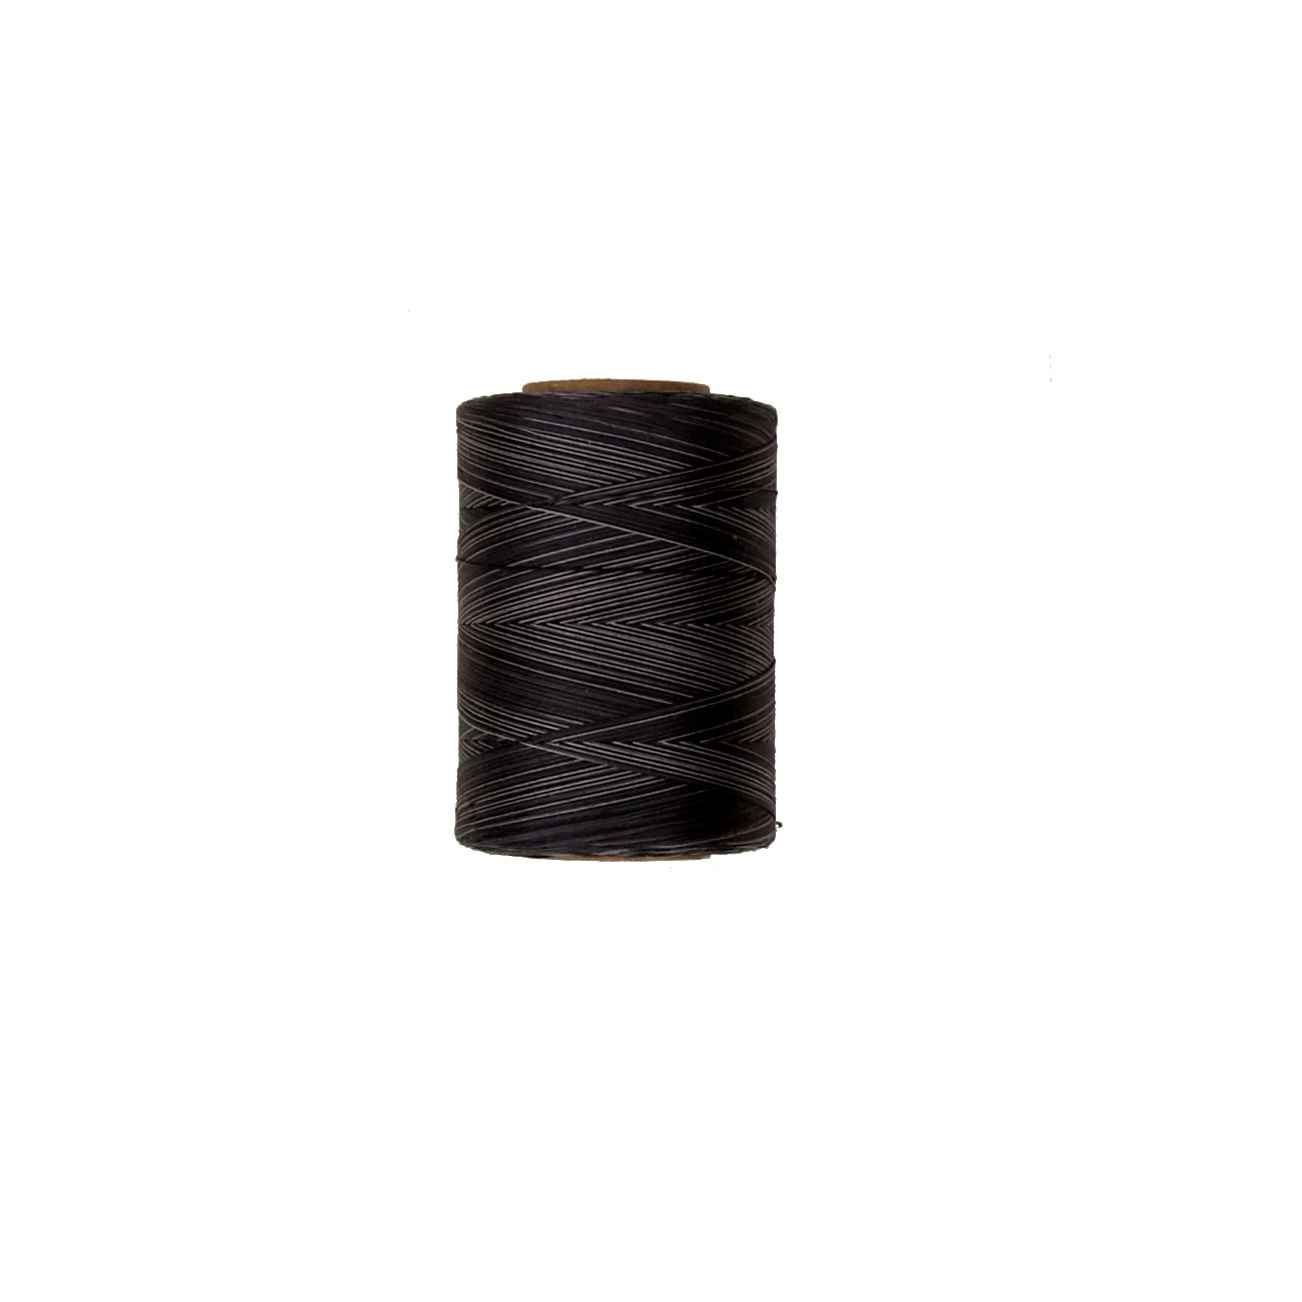 Cotton Machine Quilting Multicolor Thread 1200 YD Black Pinstripes by Coats & Clark in USA